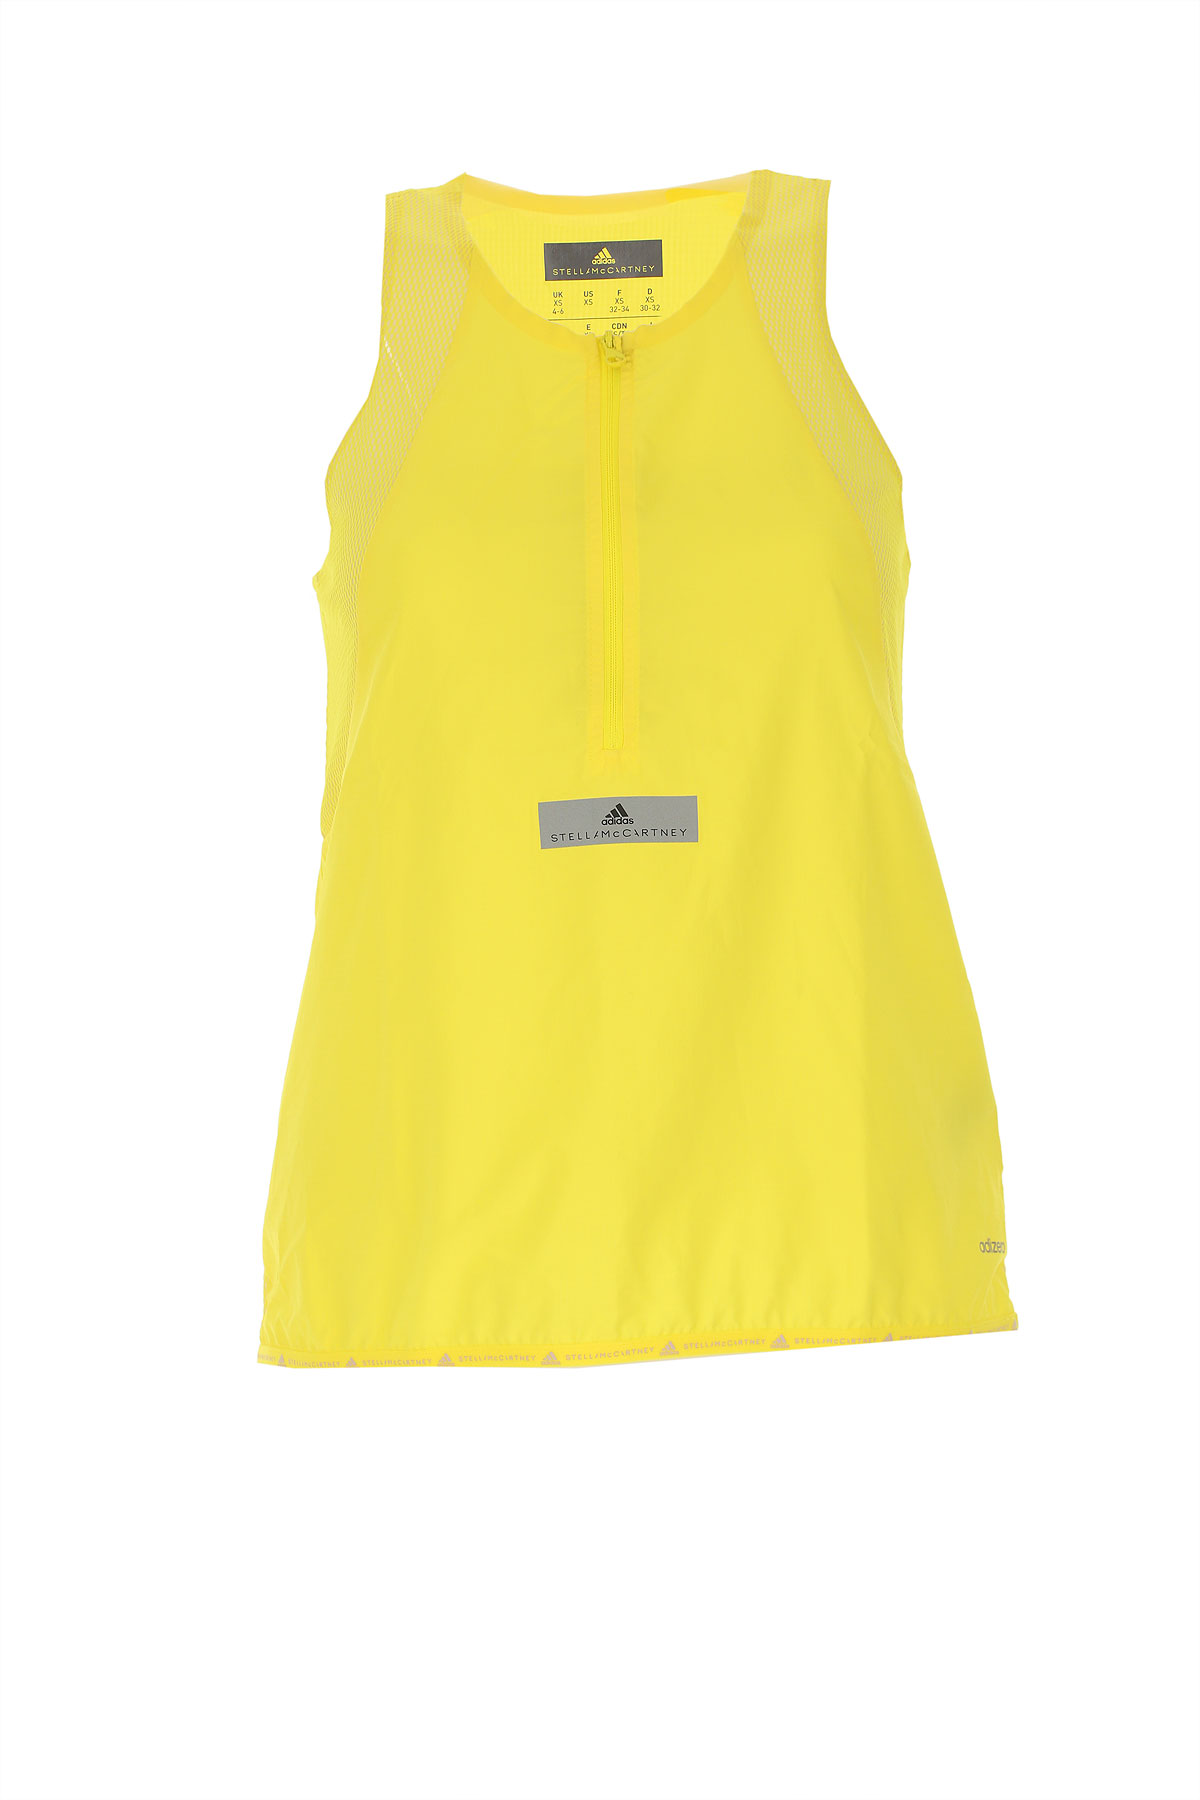 Image of Adidas Top for Women On Sale in Outlet, Yellow, polyester, 2017, 2 4